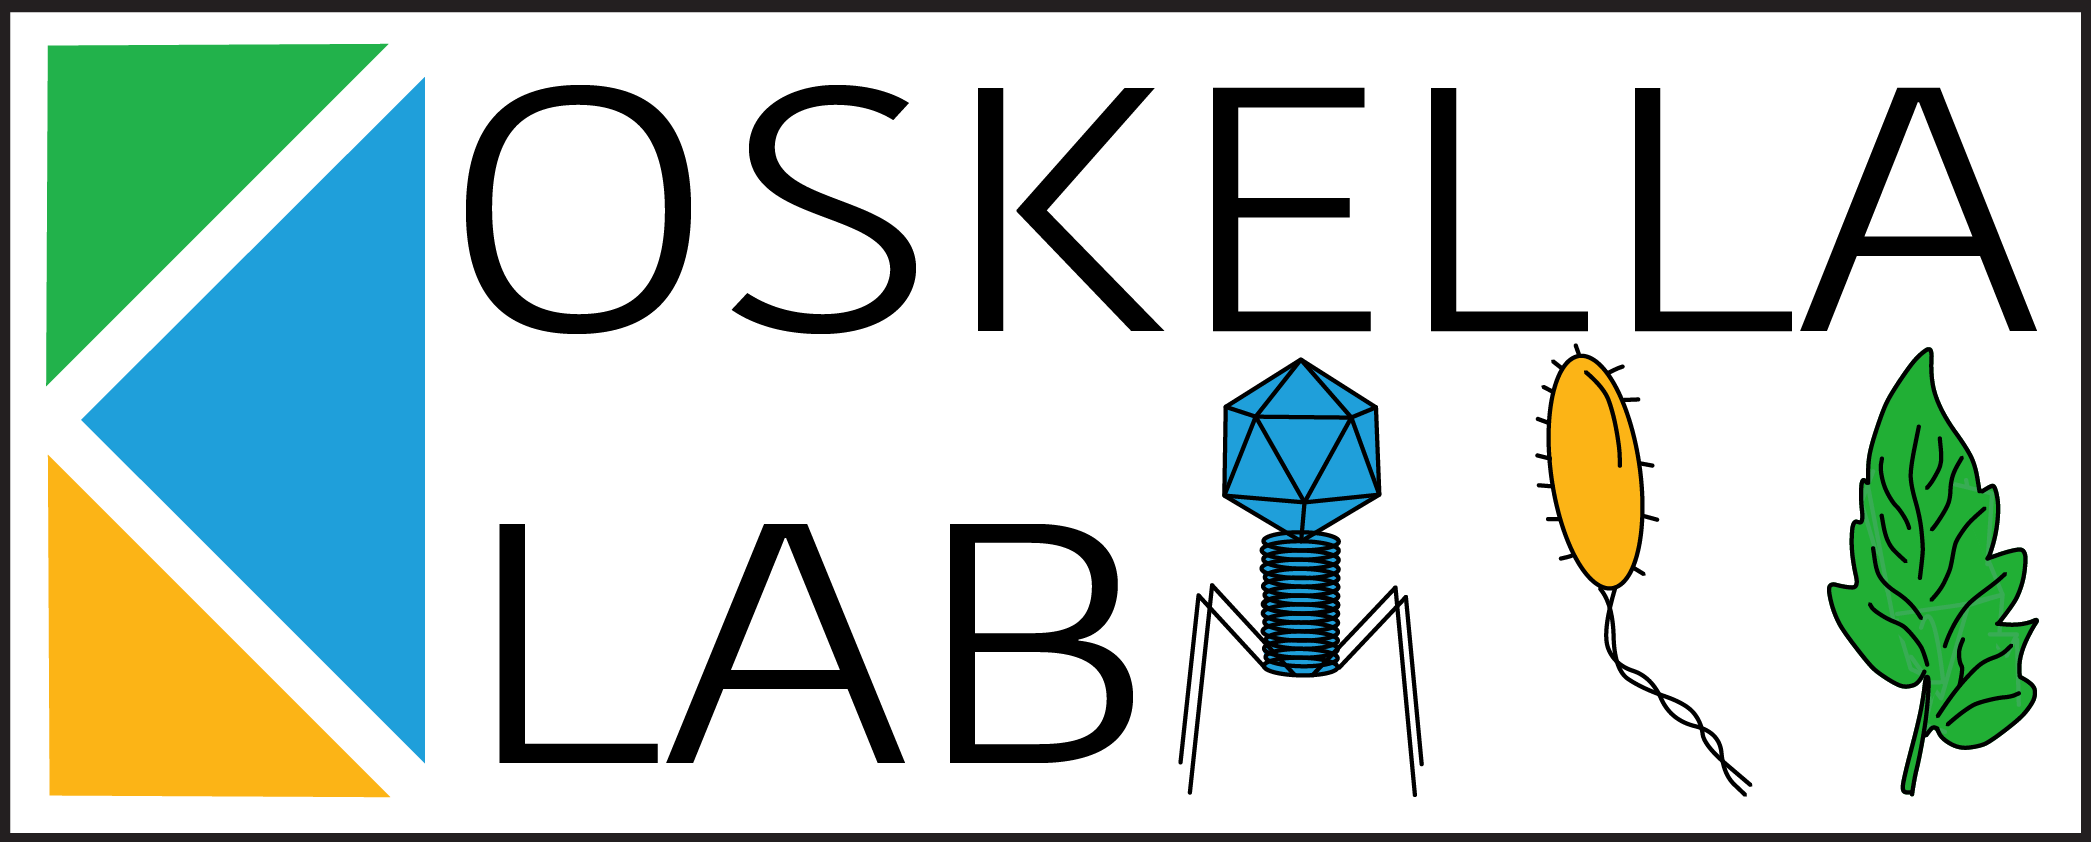 Koskella Lab at UC Berkeley